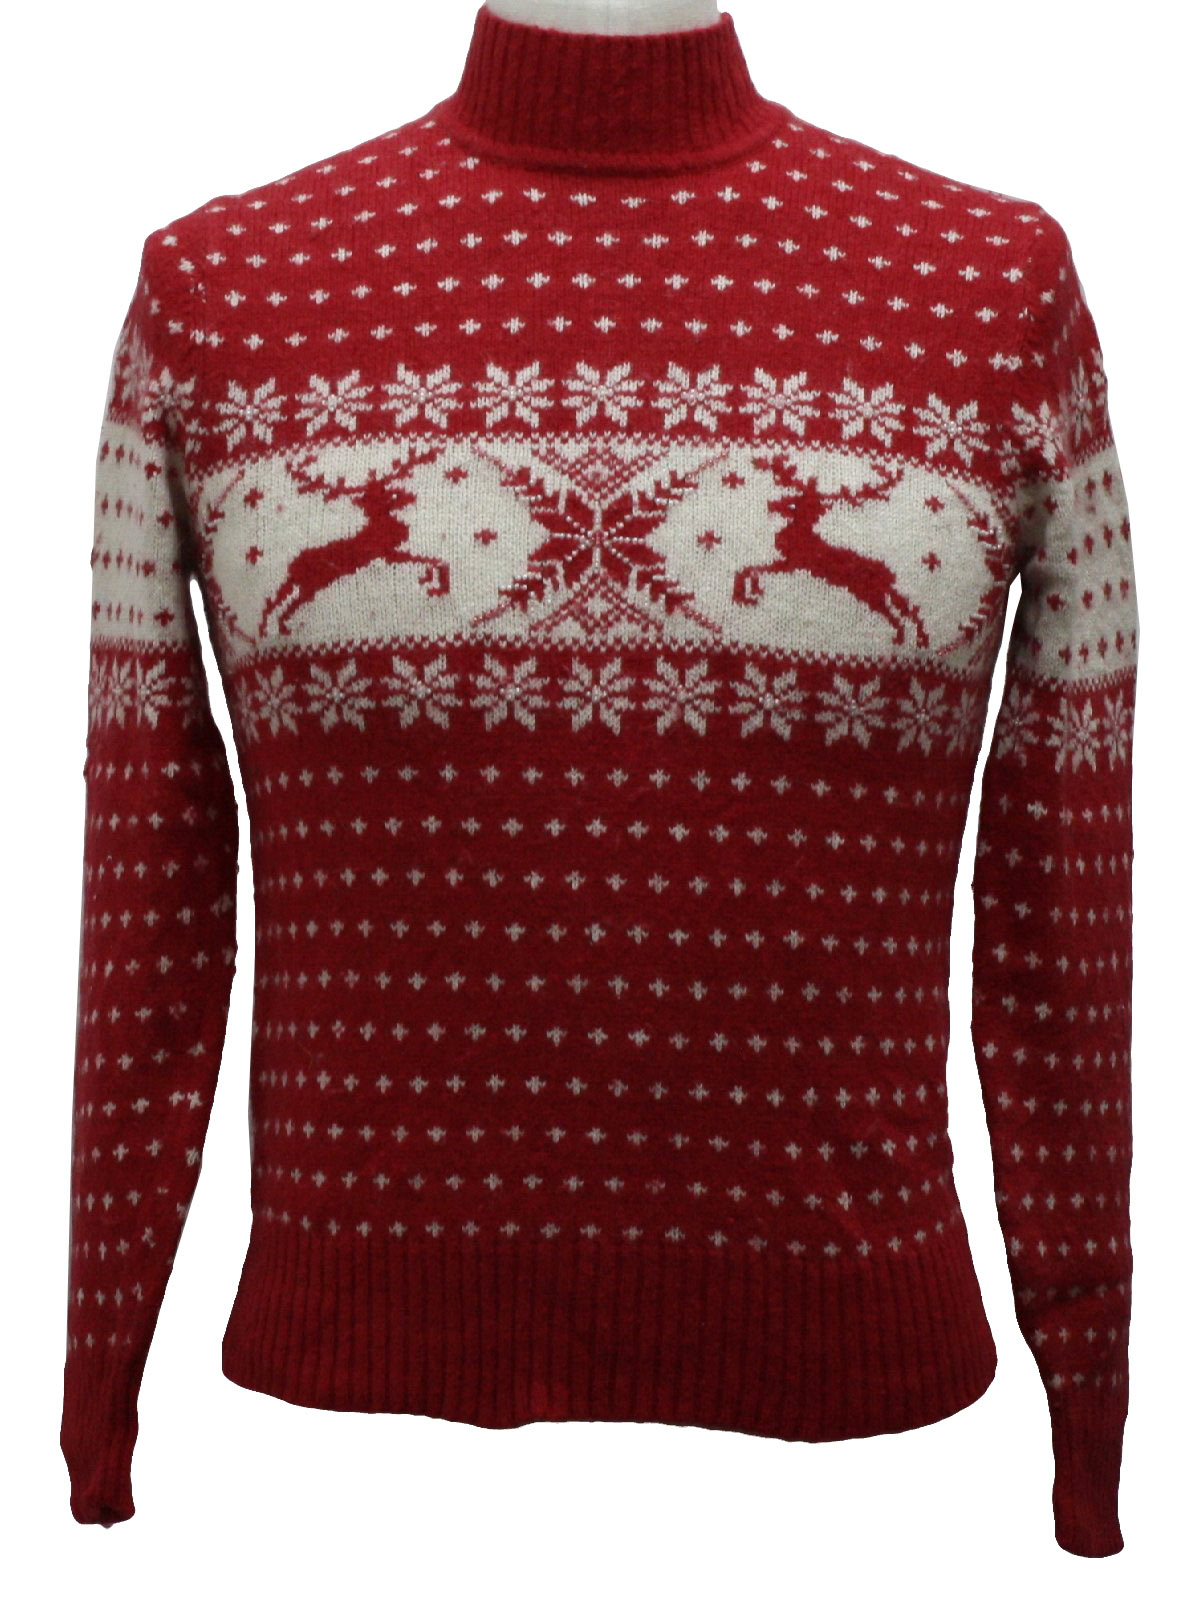 Womens or Childs Classic Reindeer Ugly Christmas Sweater   -White ... 77e1ca223